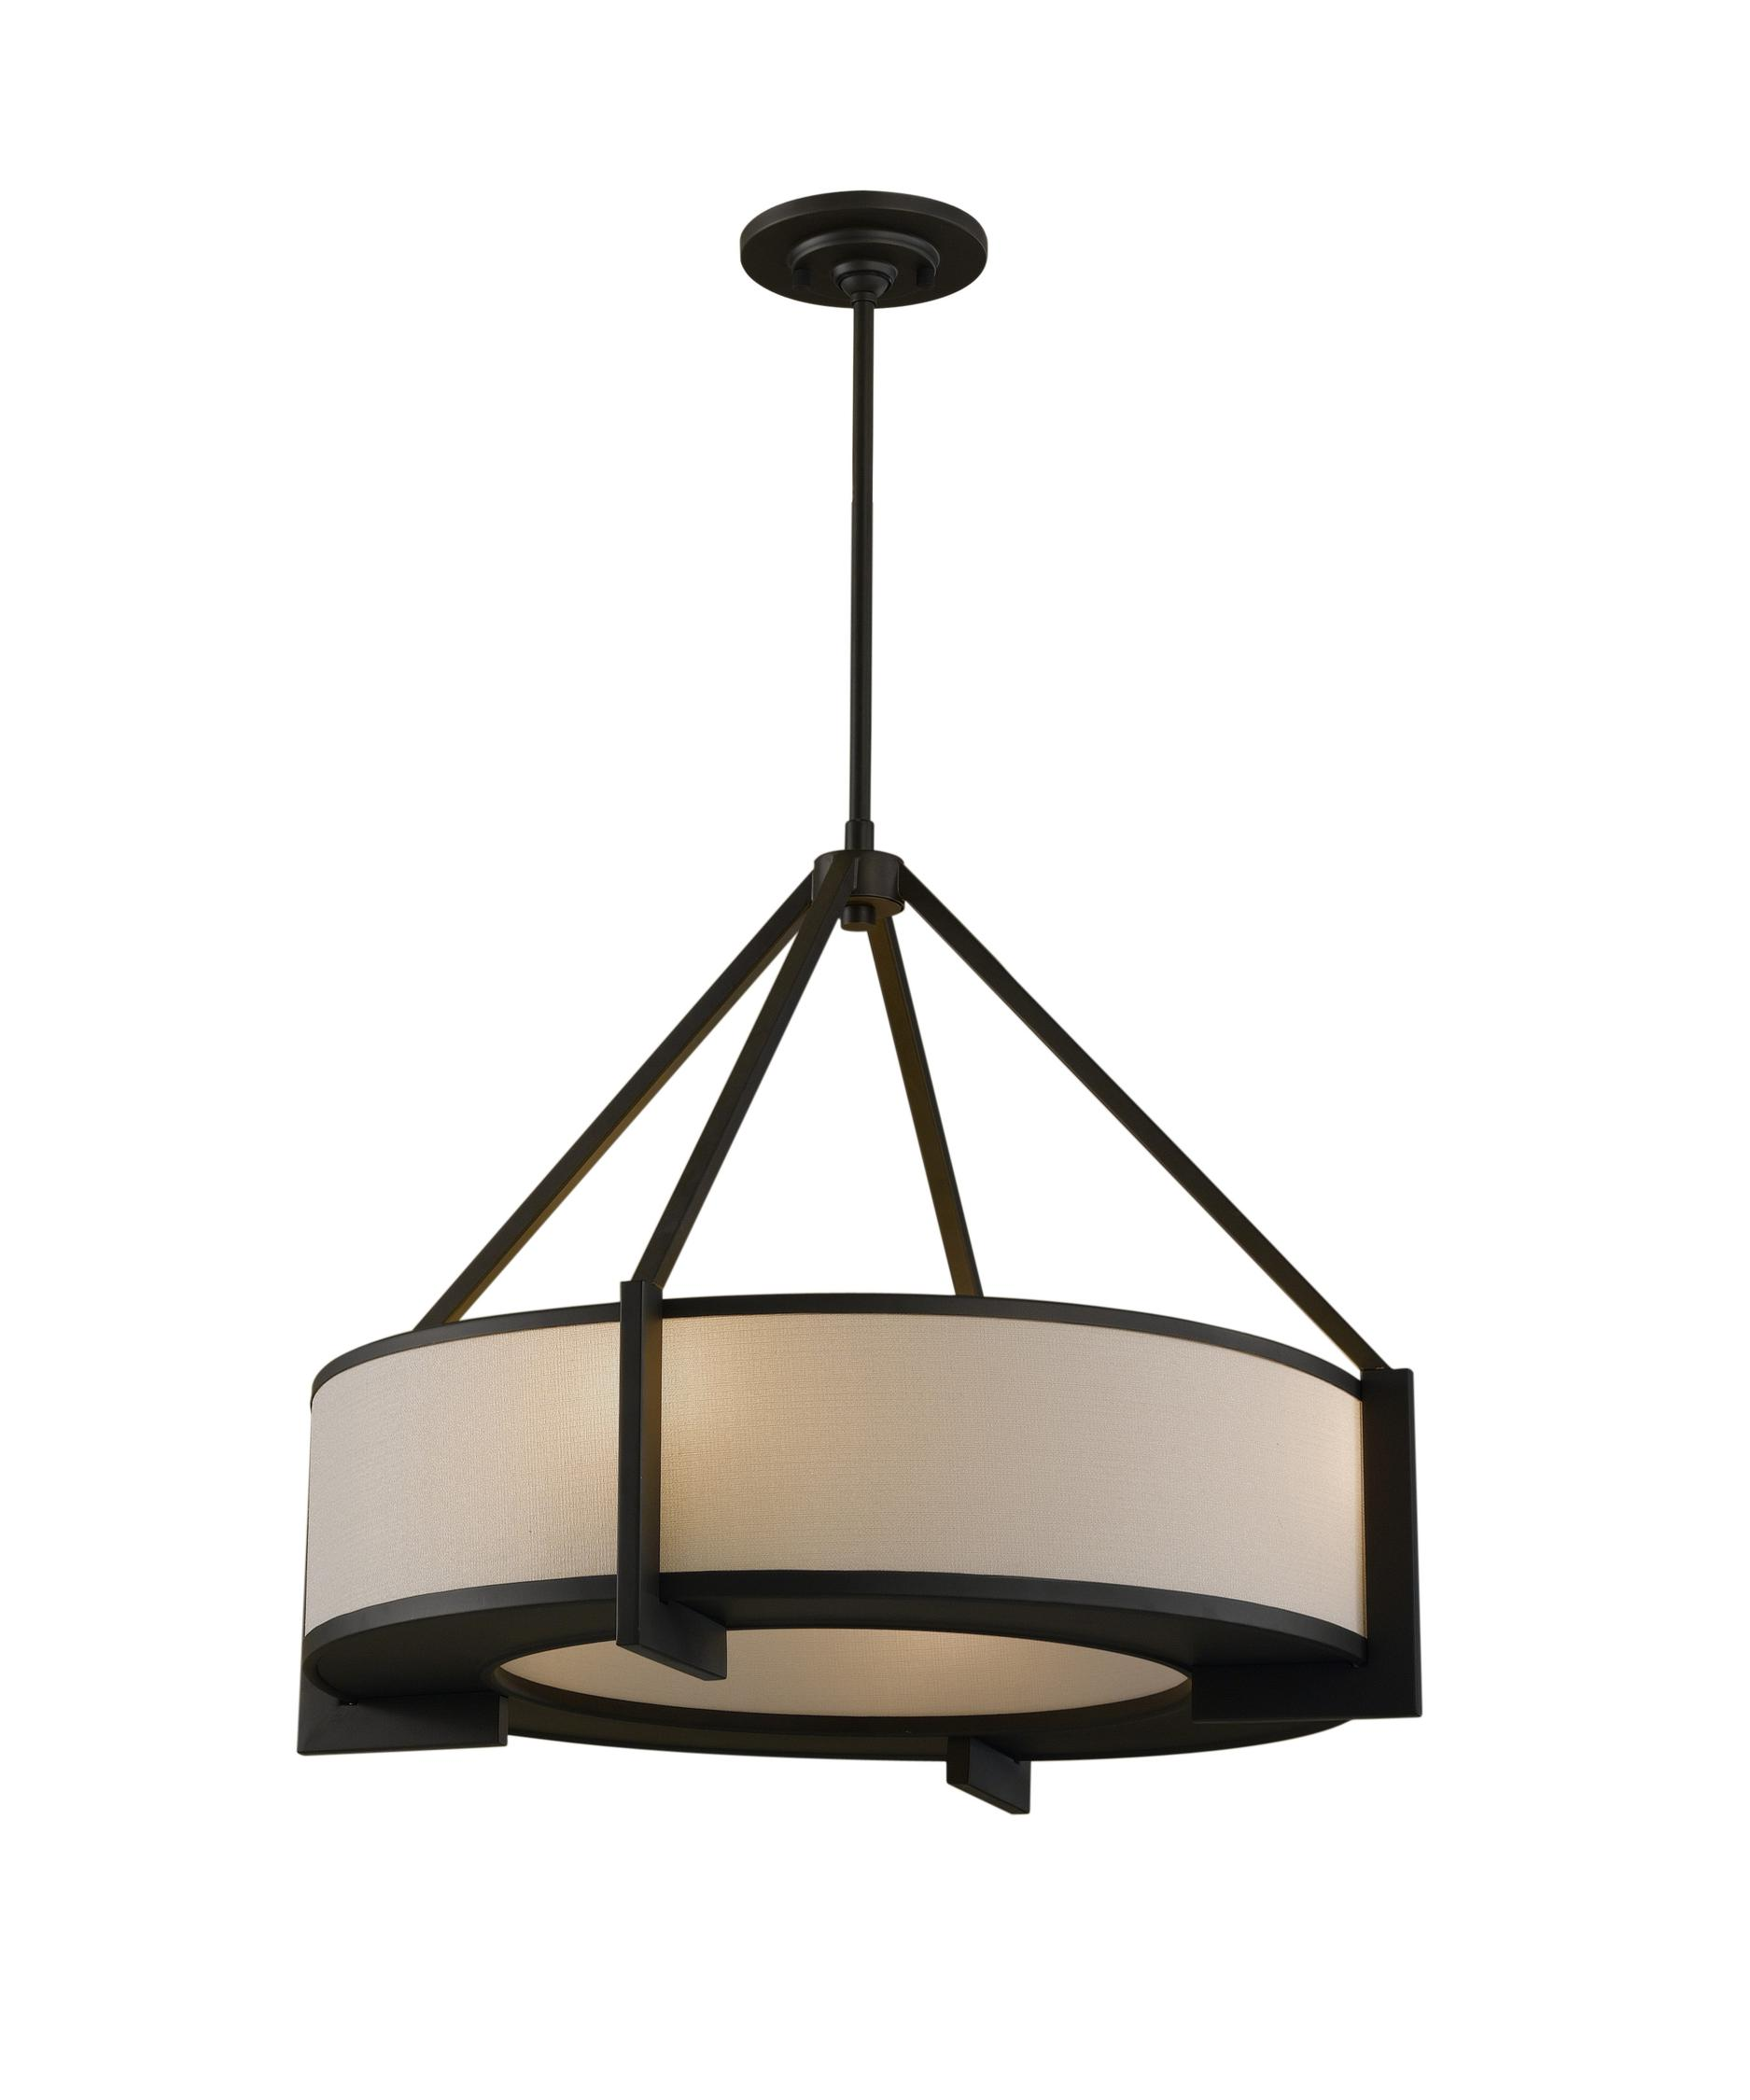 Discontinued Murray Feiss Lighting | Murray Feiss | Murray Feiss Mirrors